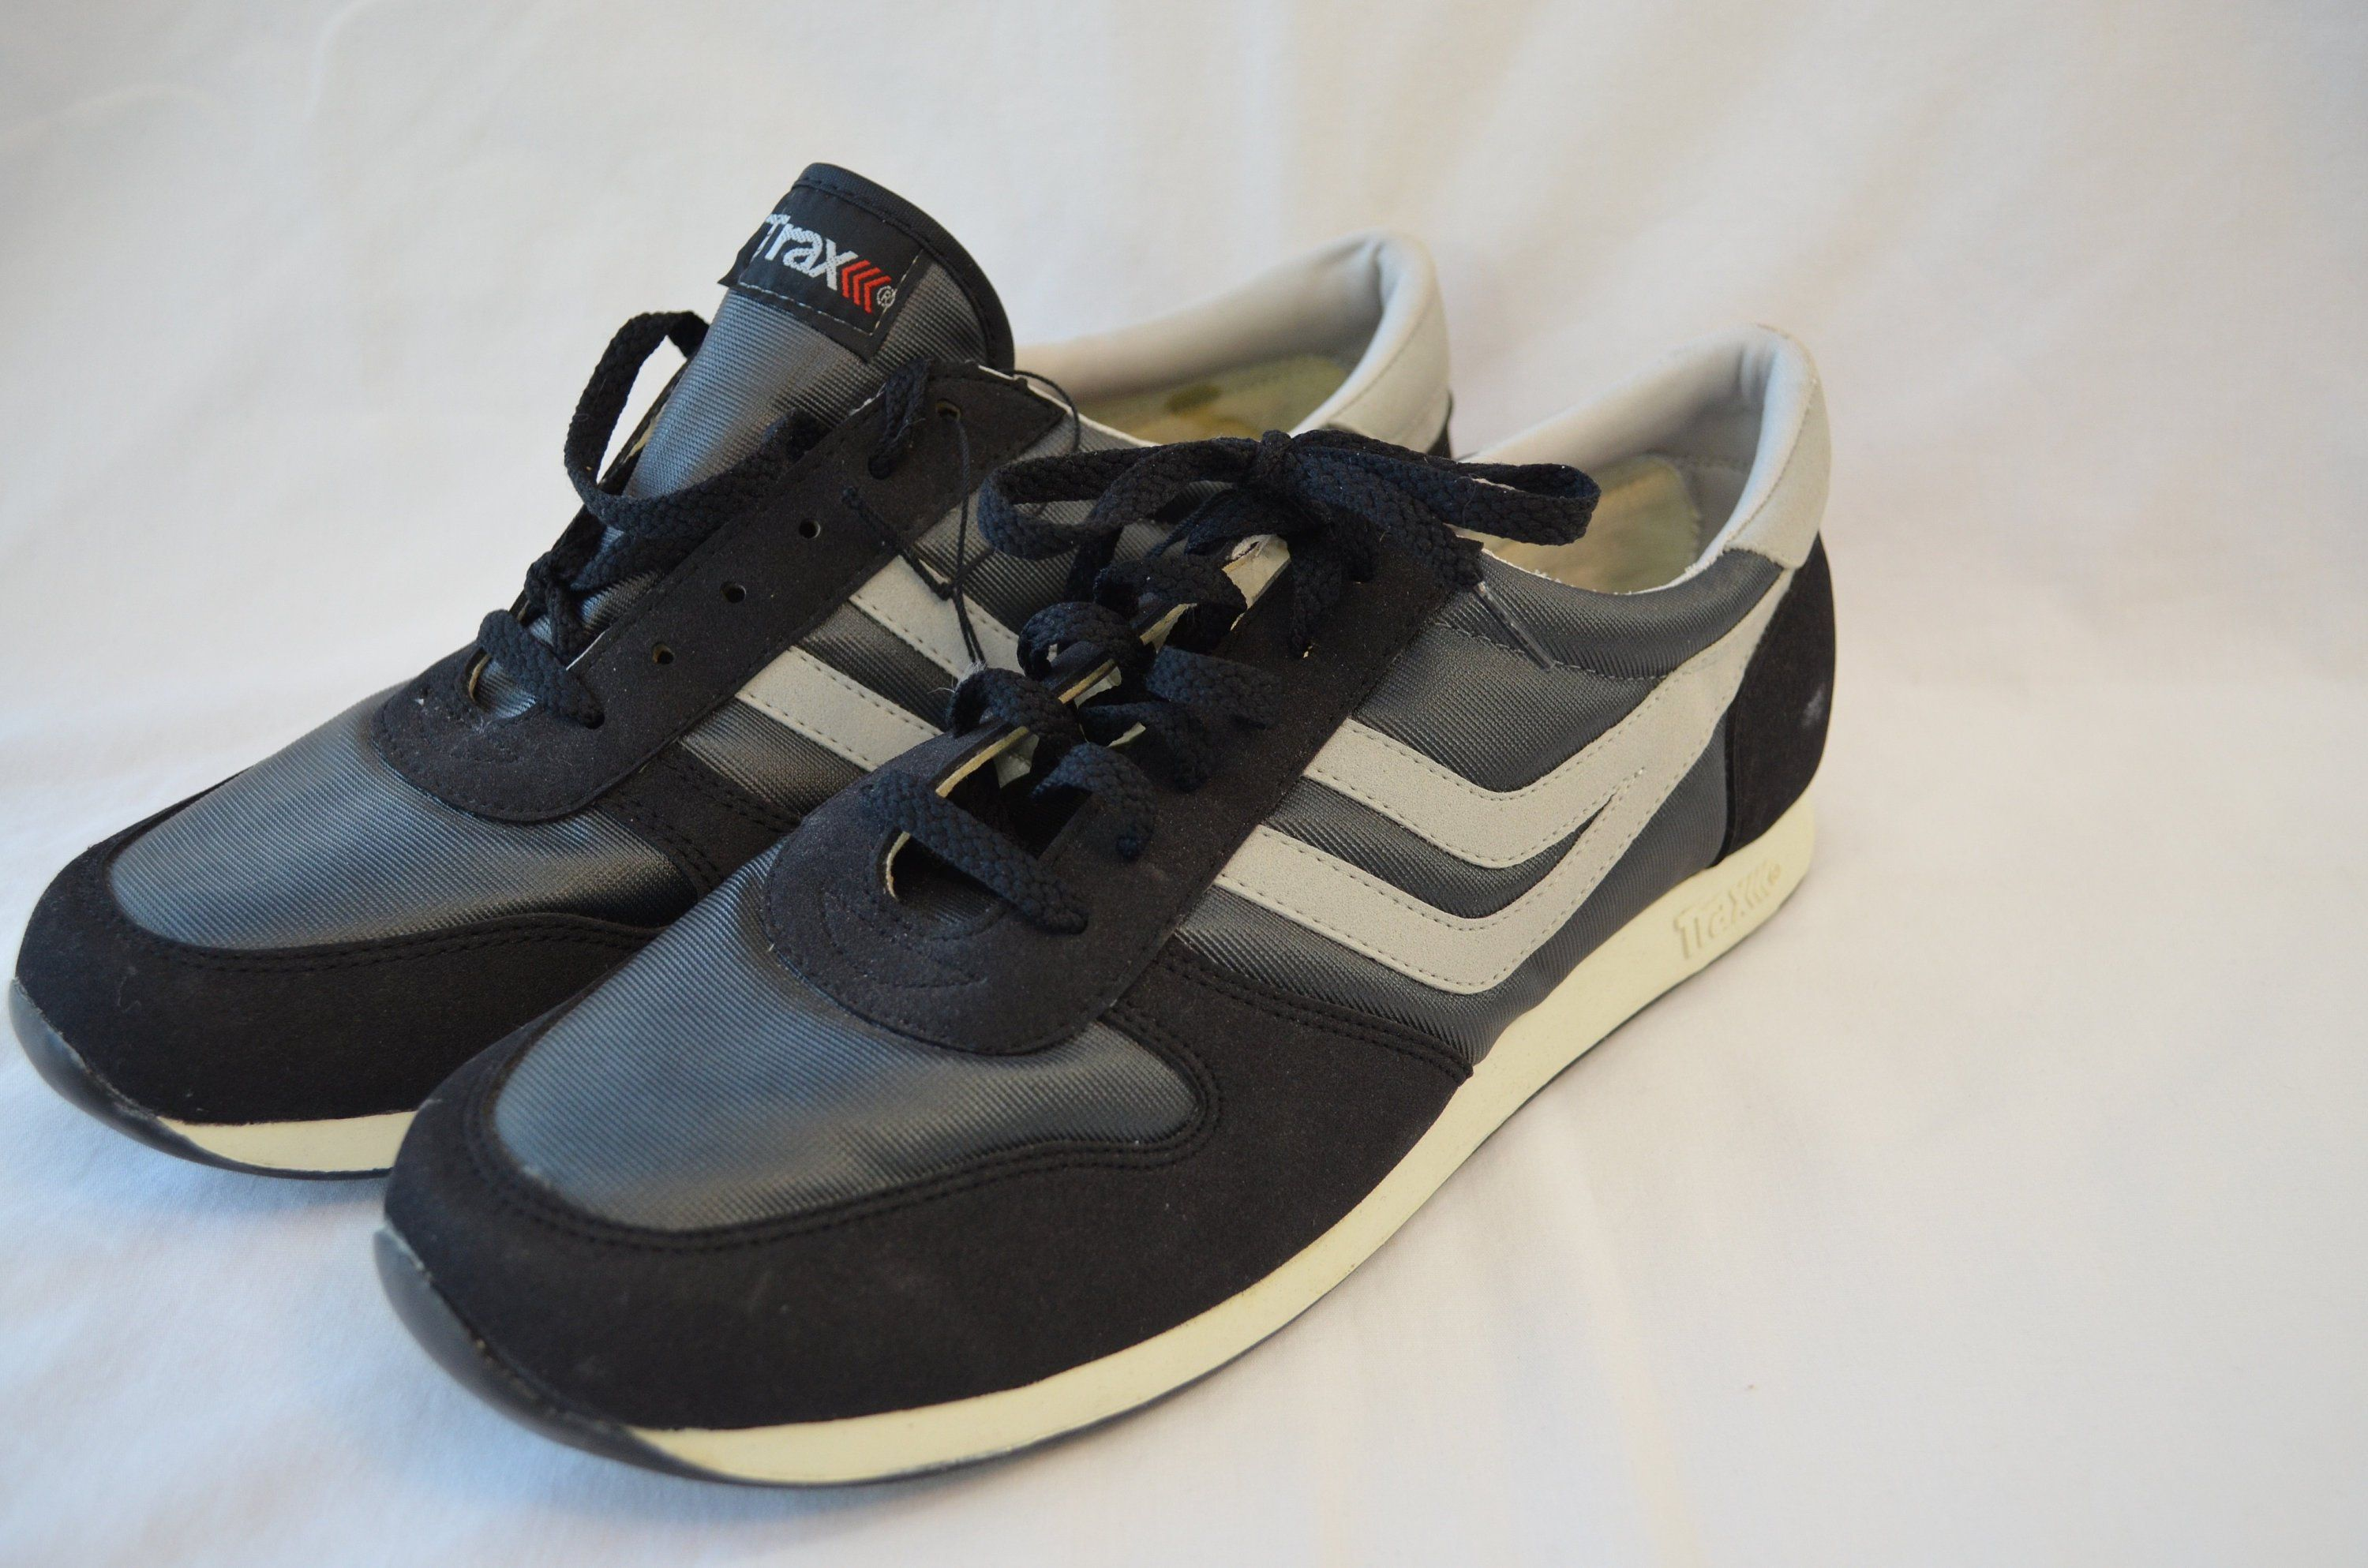 93706511439b Vintage TRAX tennis running SHOES mens sz. 11 1980 s NWT dead stock by  ilovevintagestuff on Etsy